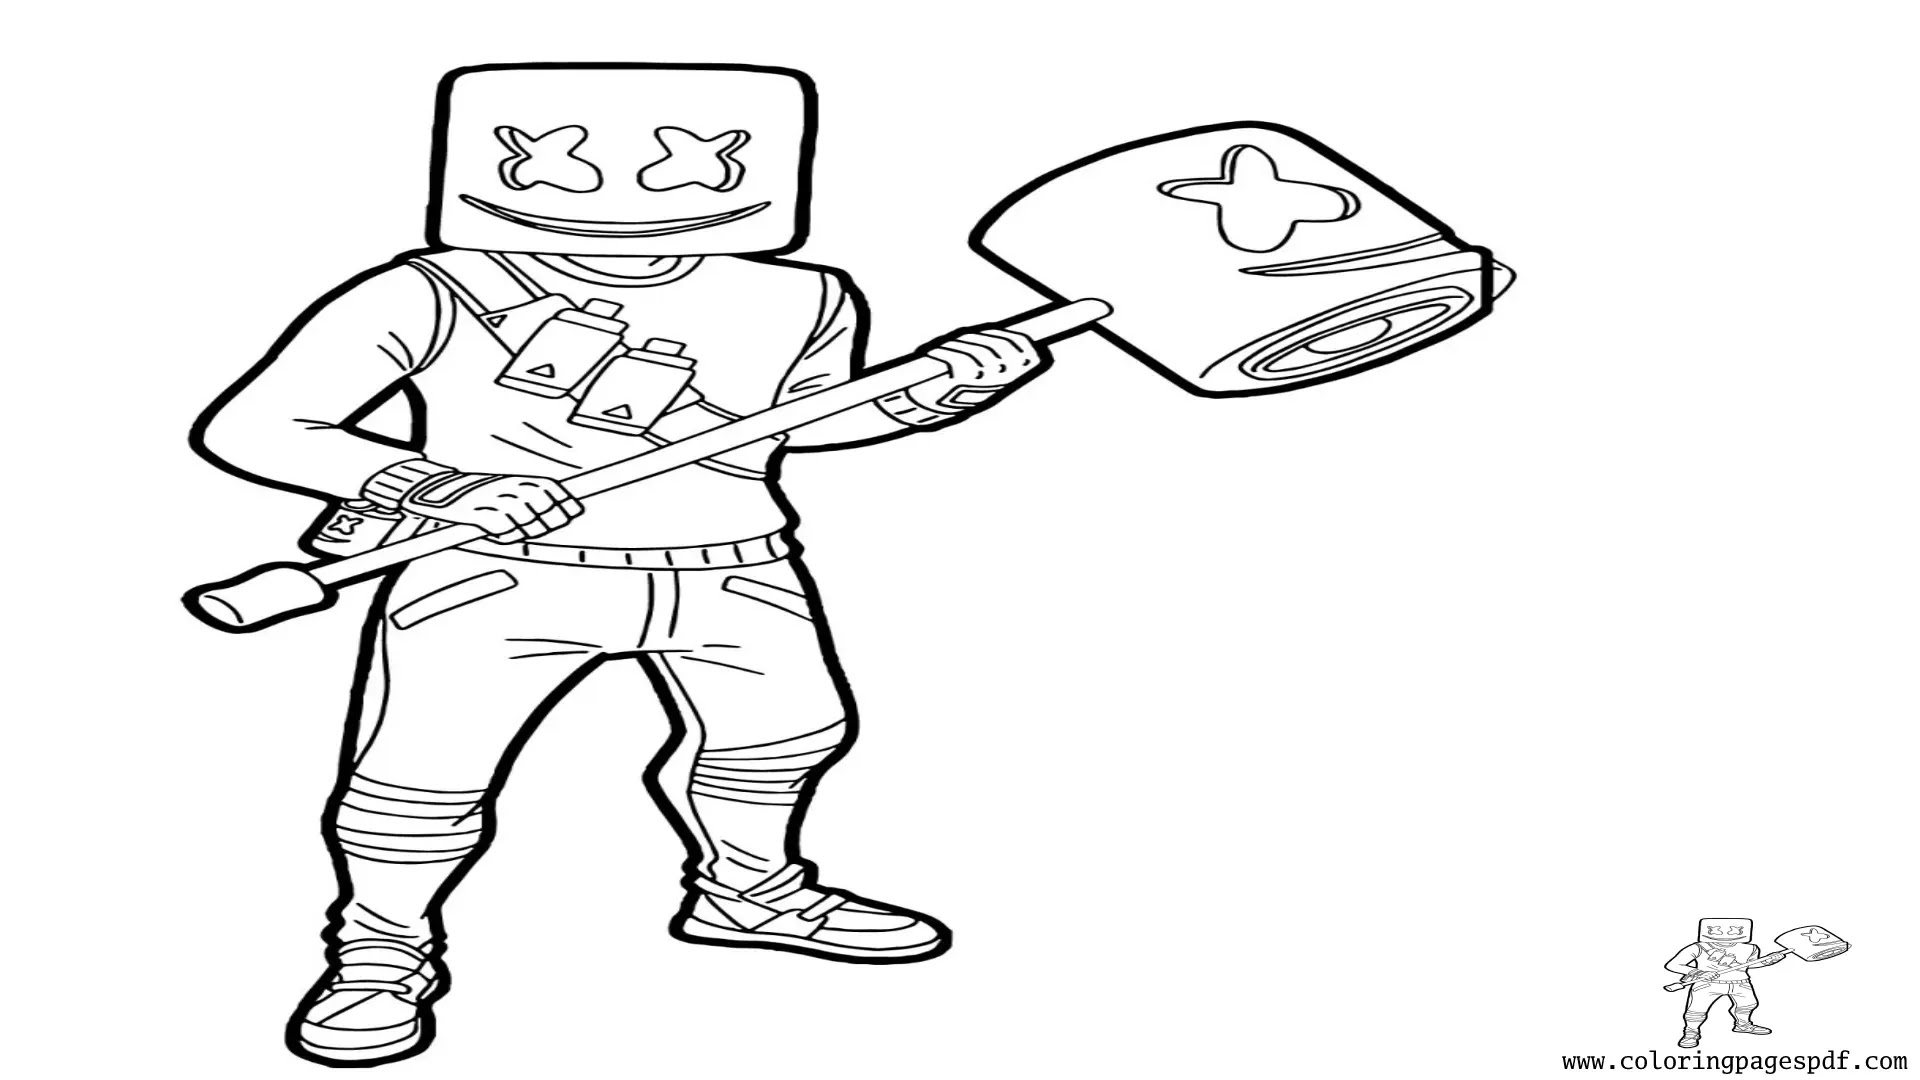 Coloring Page Of Fortnite Marshmello Skin